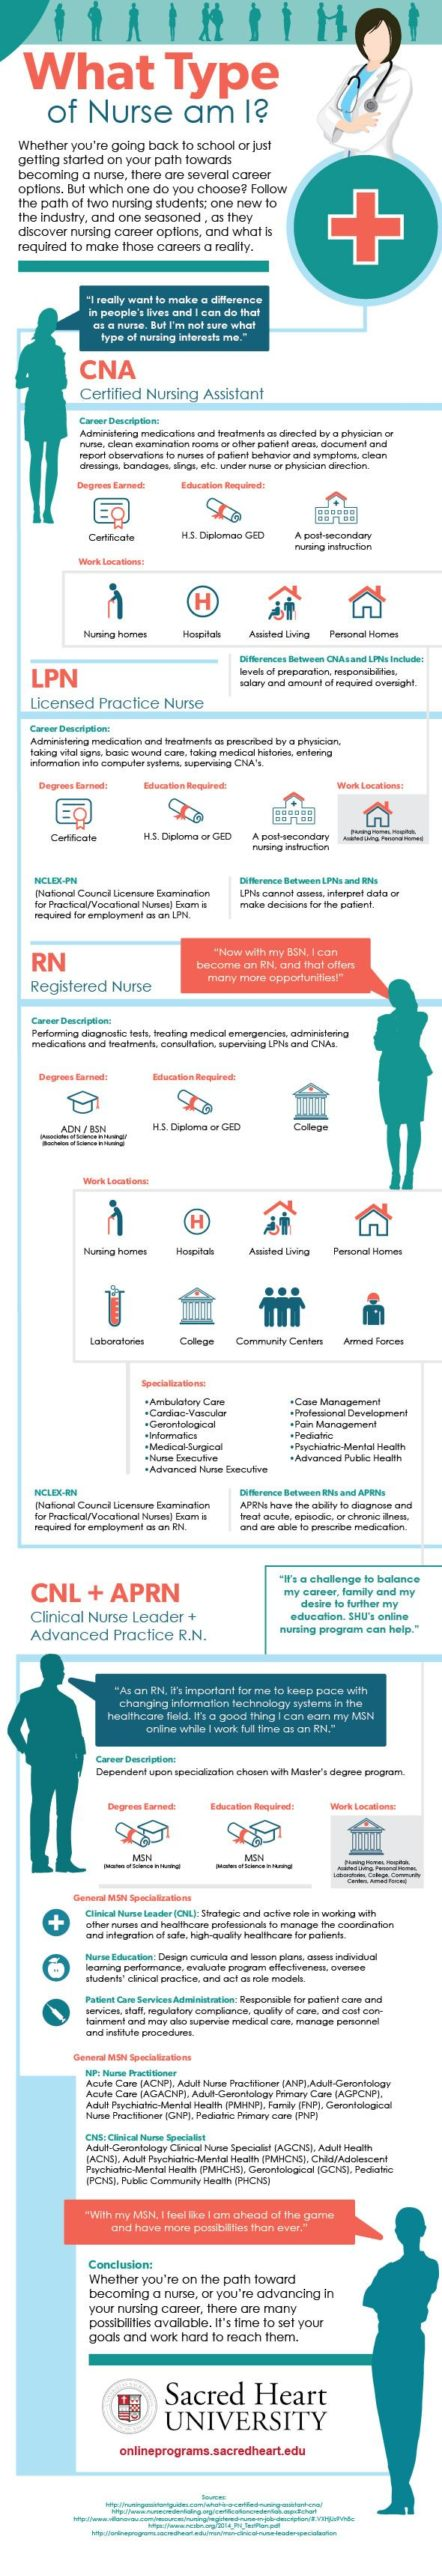 Infographic that examines career pathways for nursing professionals at different career stages.